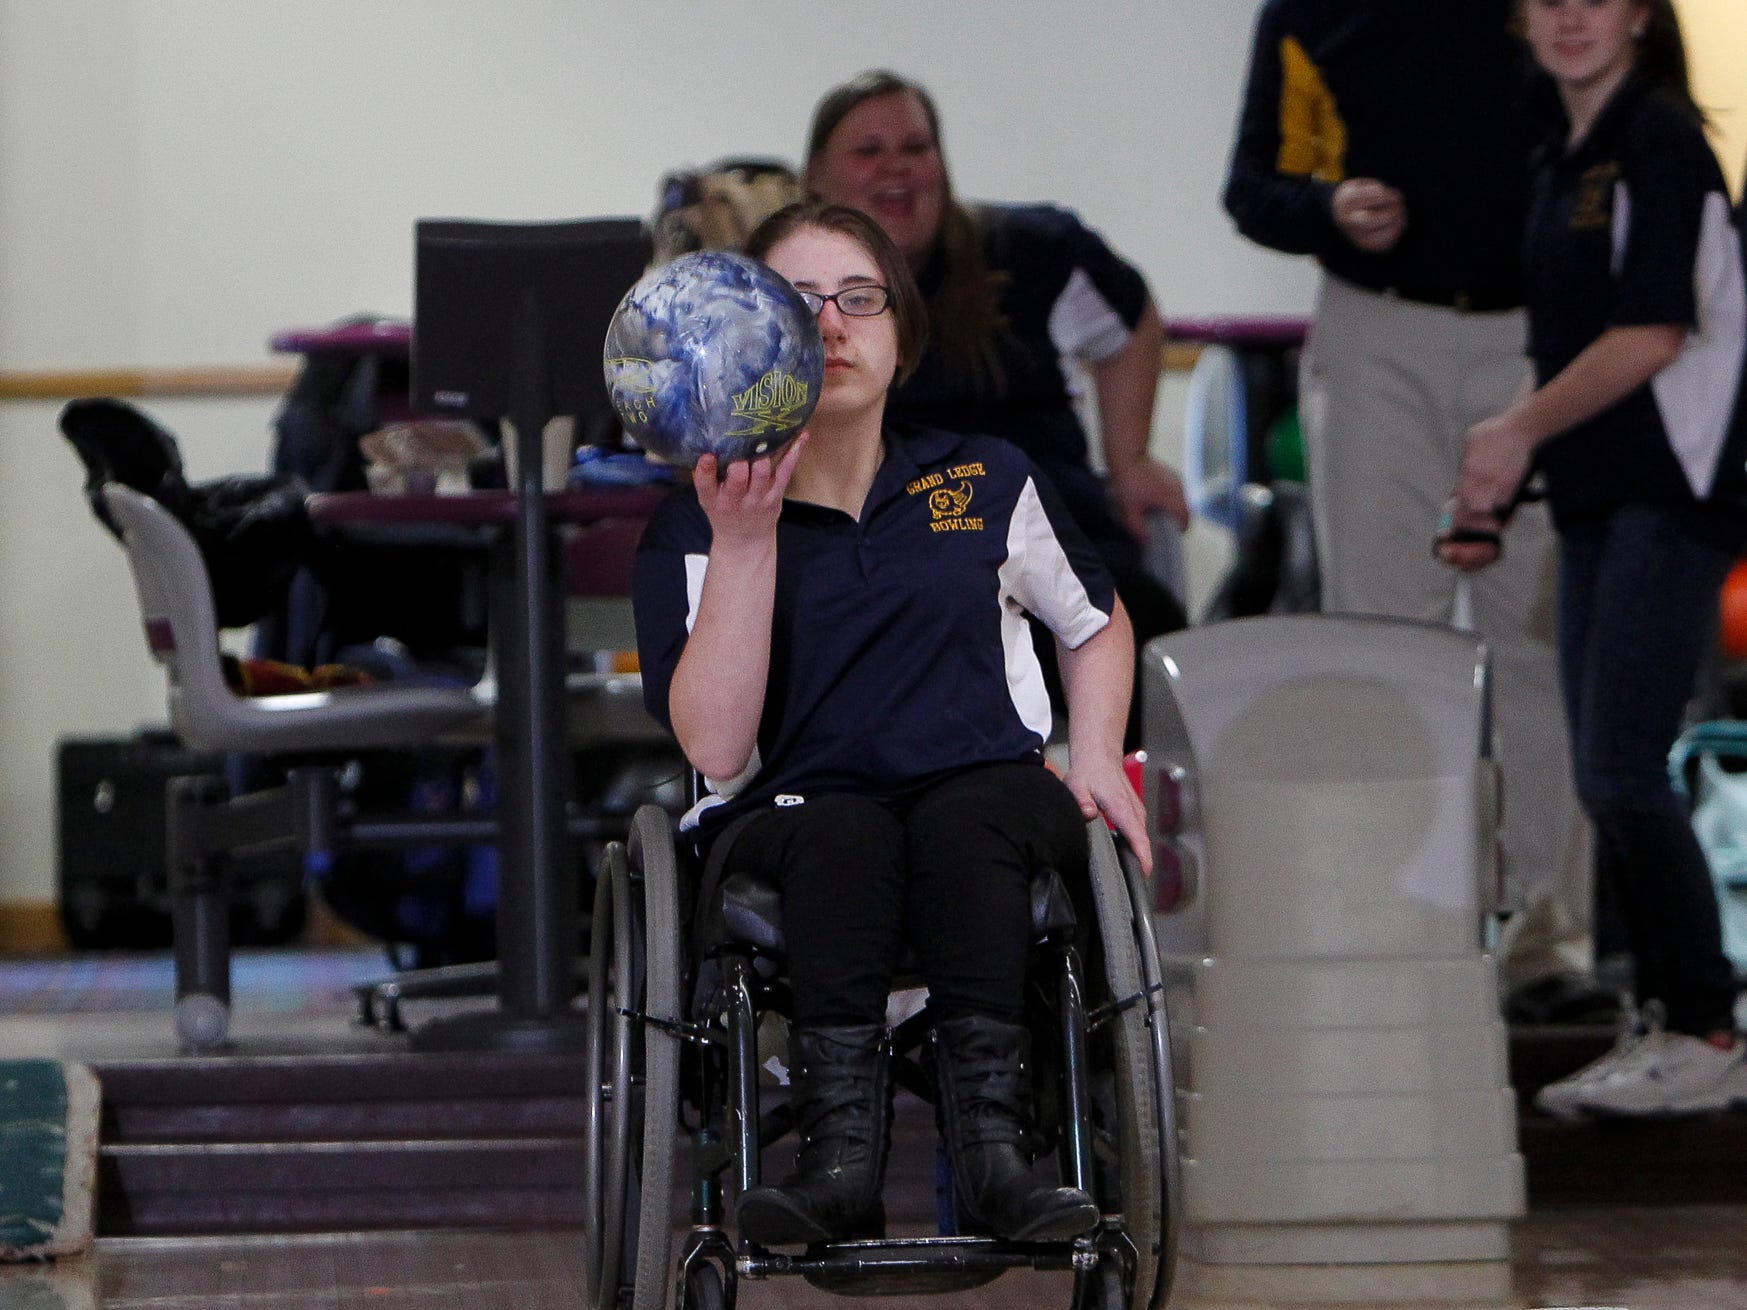 Grand Ledge Bowling team member, sophomore Caitlyn Wells sizes up the pins before sending the ball down the lane at Royal Scott Tuesday. Wells has spina bifida, and has been in a wheelchair her entire life.